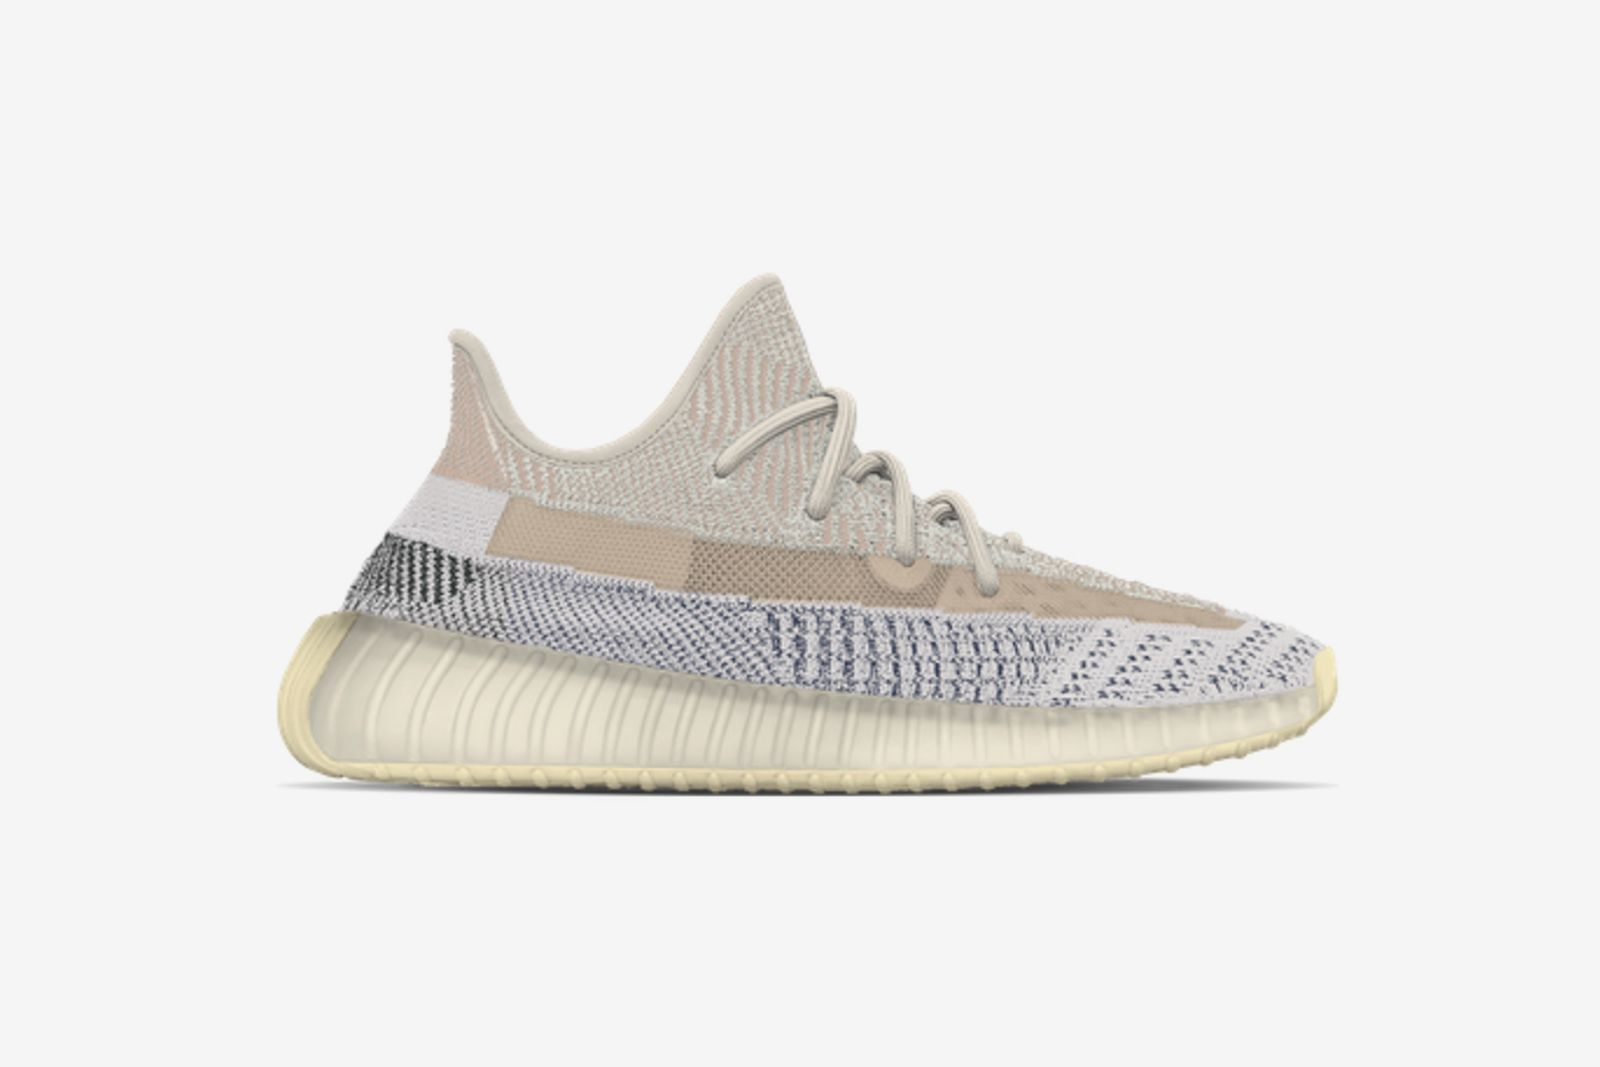 adidas-yeezy-spring-summer-2021-releases-07